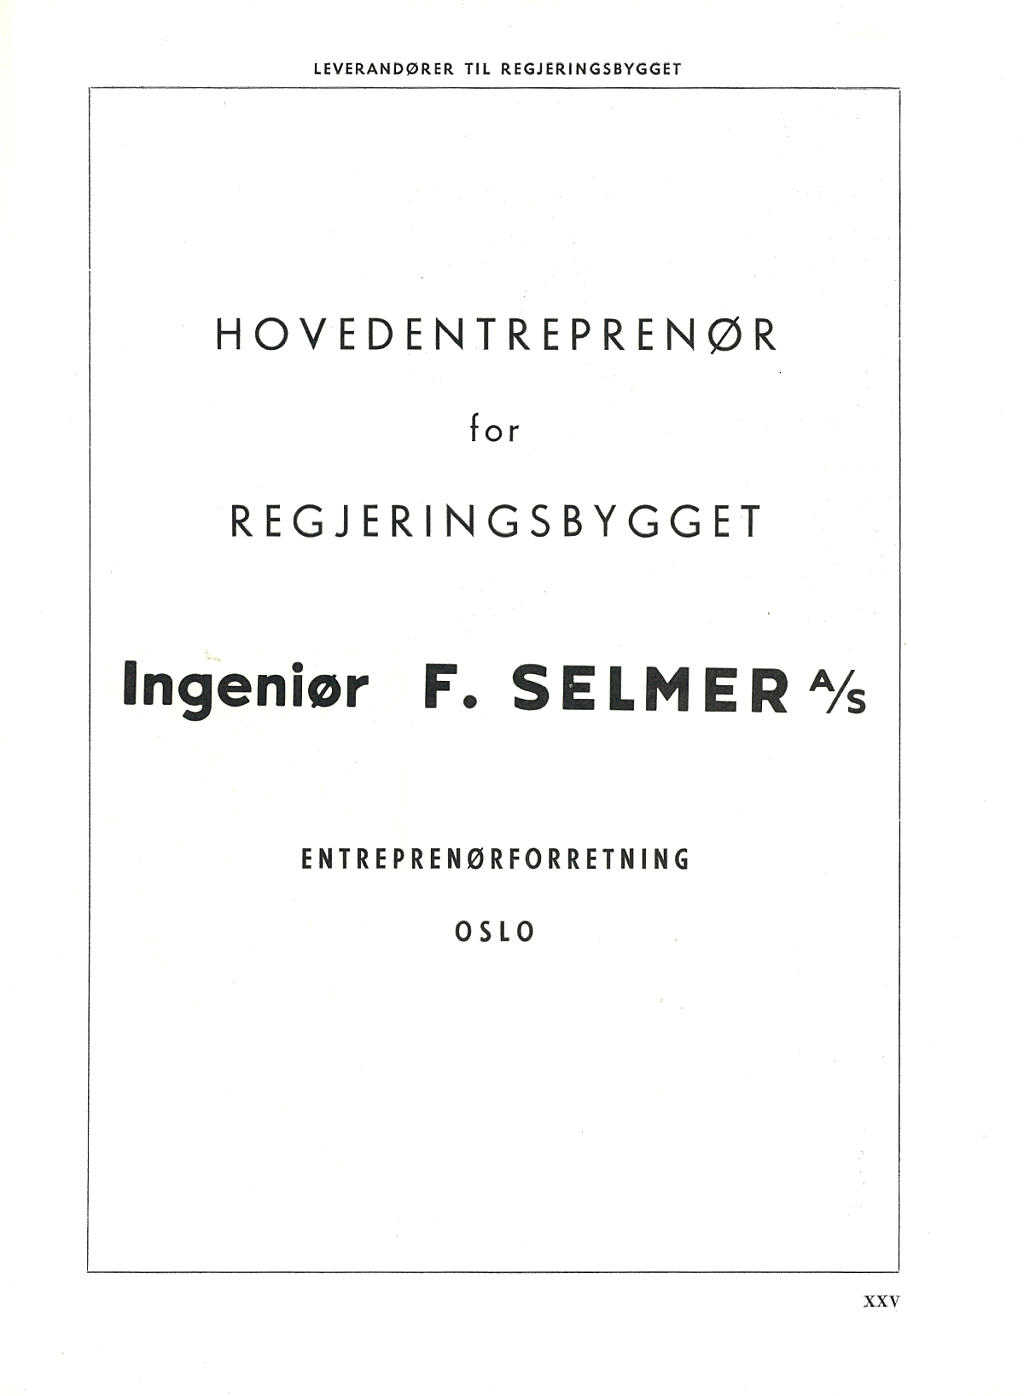 Ingeniør F. Selmer AS